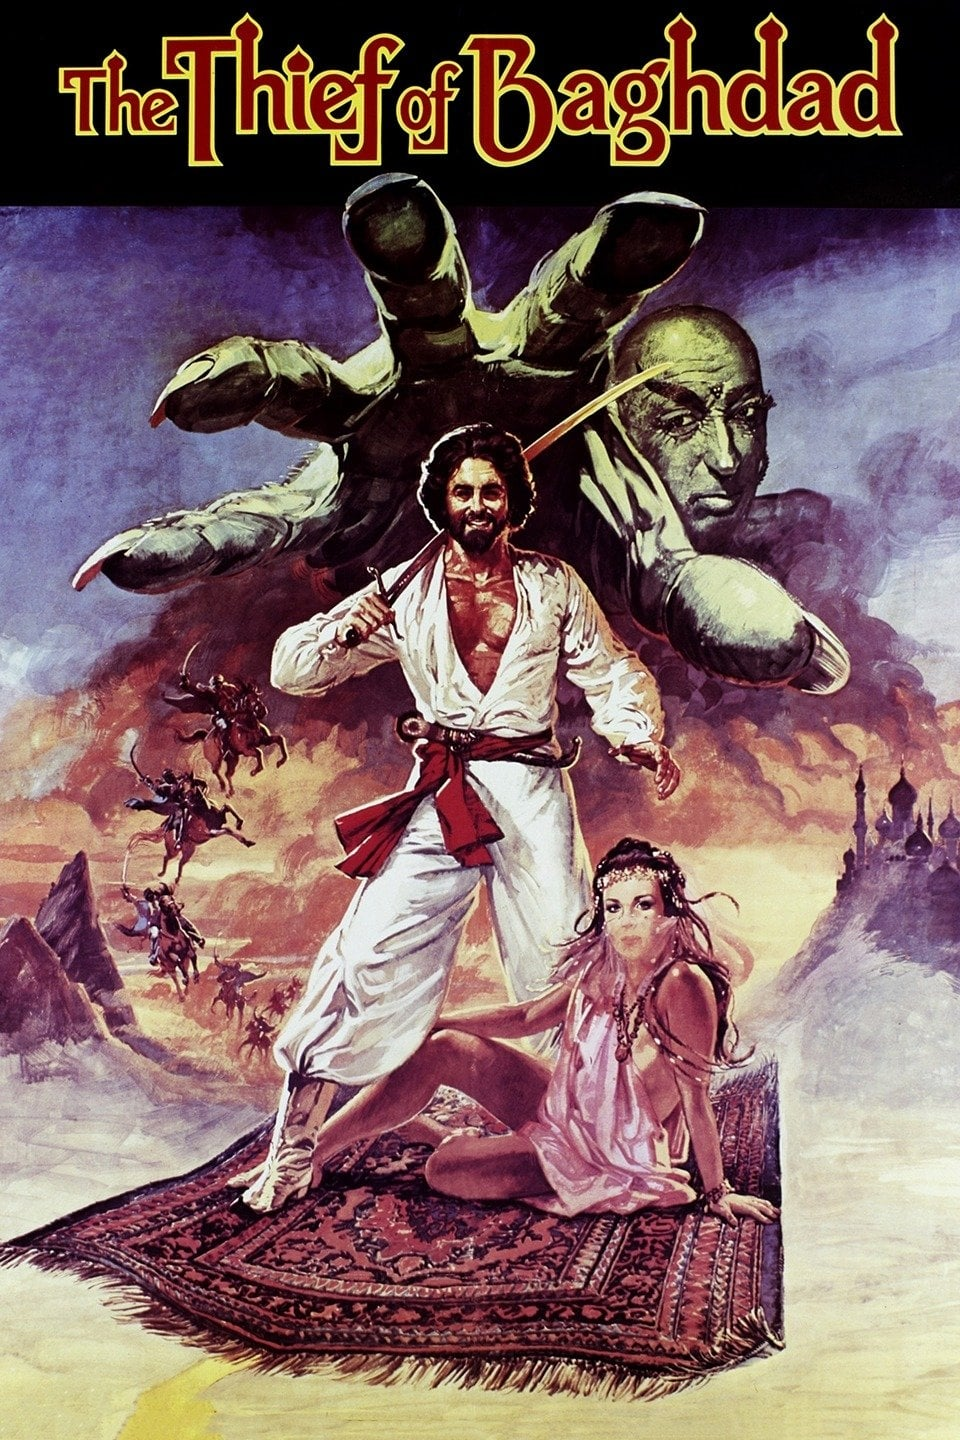 The Thief of Bagdad (1978)